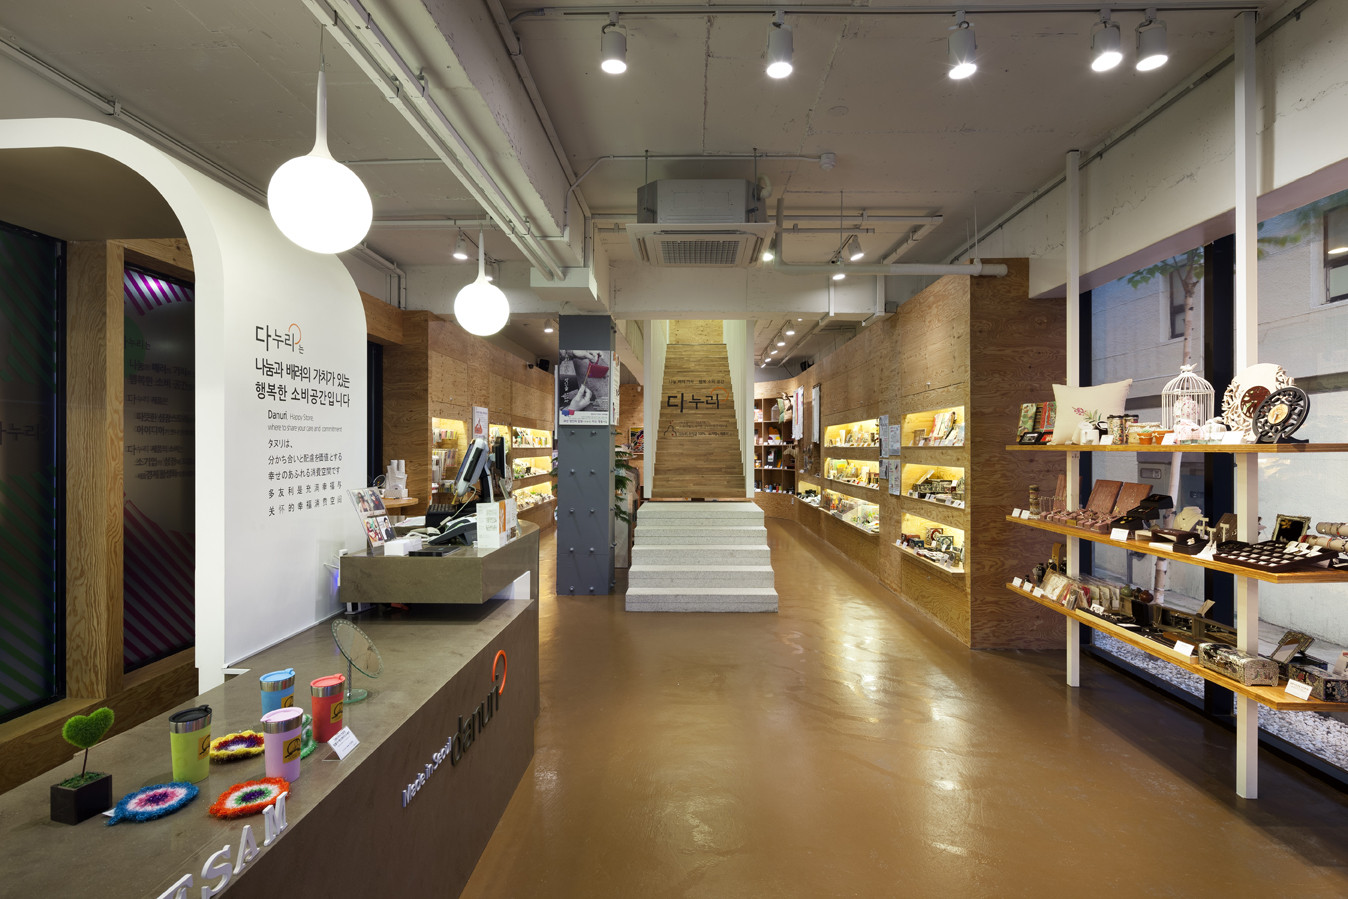 Unique Design Ideas For Retail Store Danuri Kangnam Store In South Korea By Hyunjoon Yoo